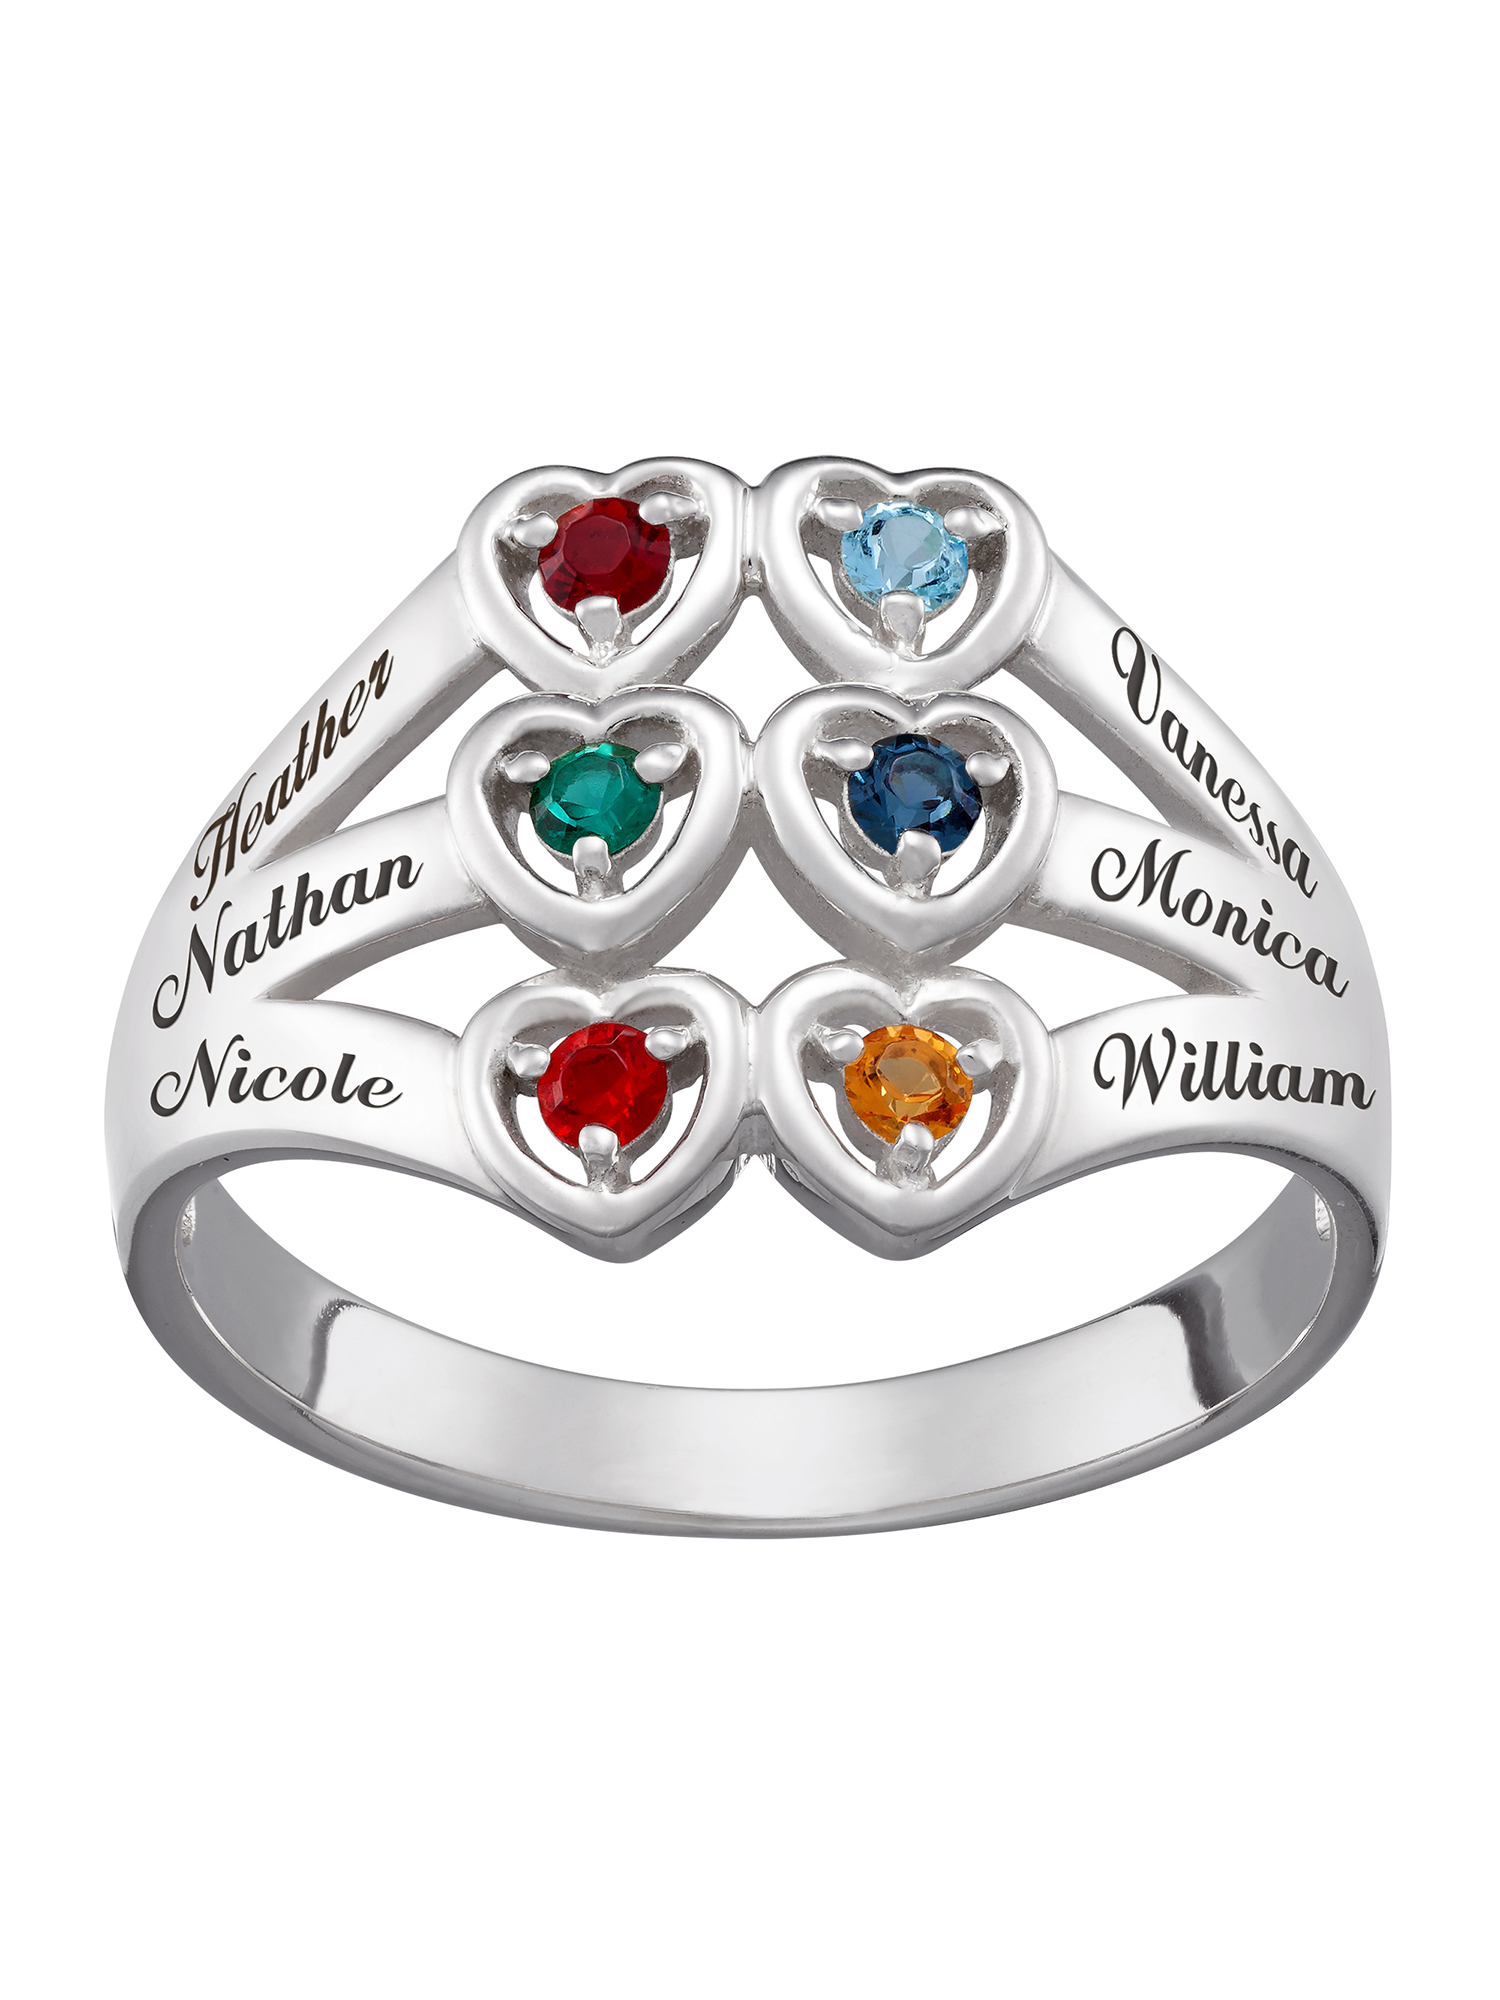 com walmart ring ip mother keepsake silver family sterling in available one and birthstone jewelry love s white rings softball gold personalized